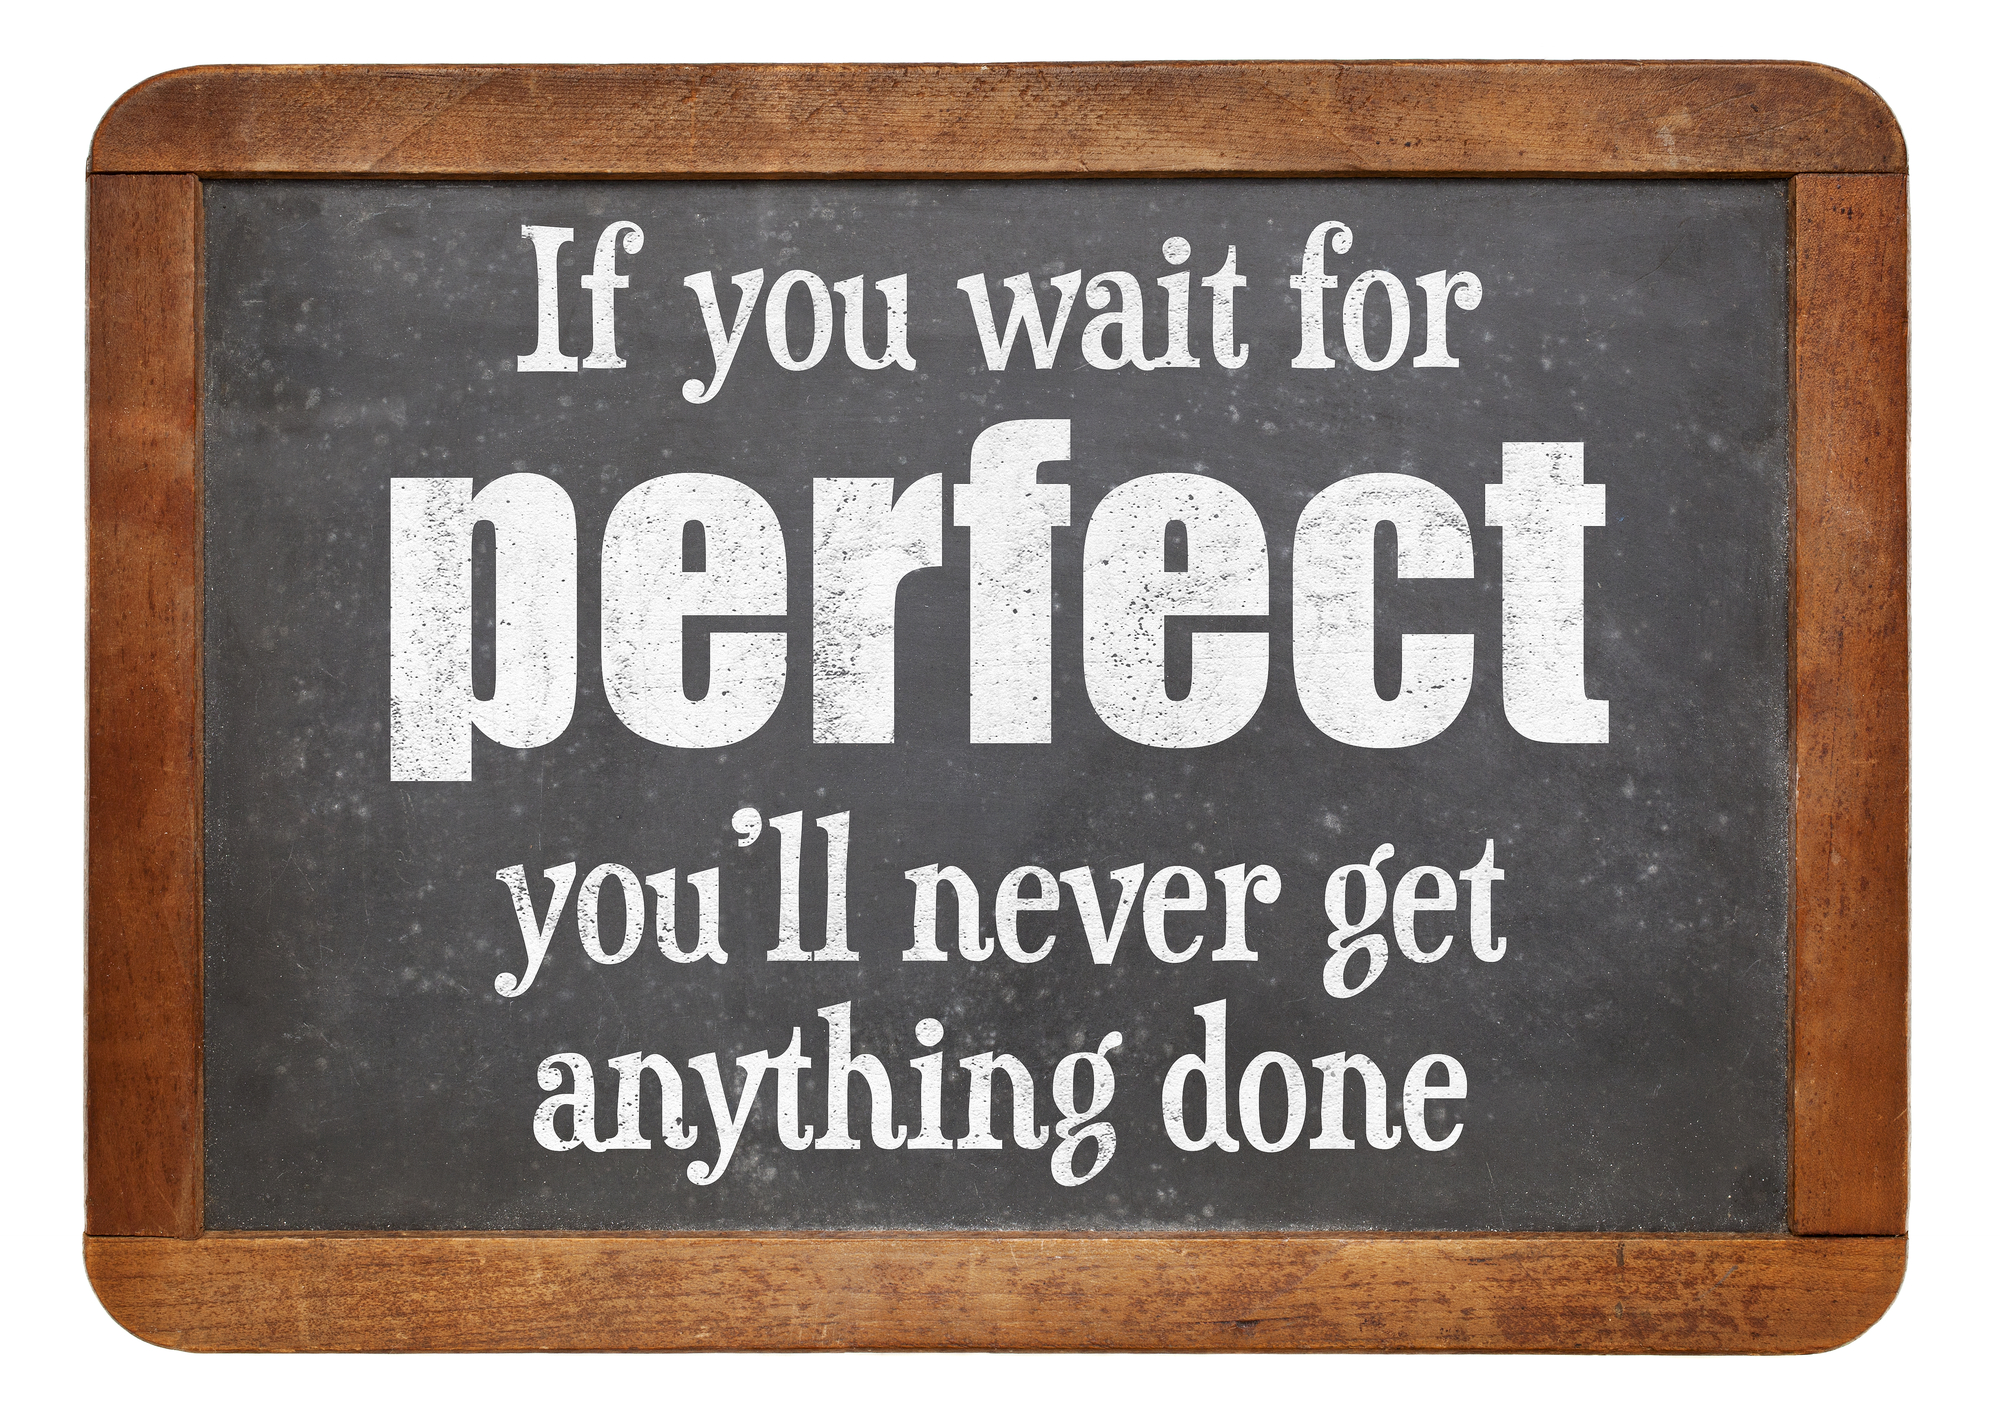 If you wait for perfect you will never get anything done - words of wisdom on a vintage slate blackboard